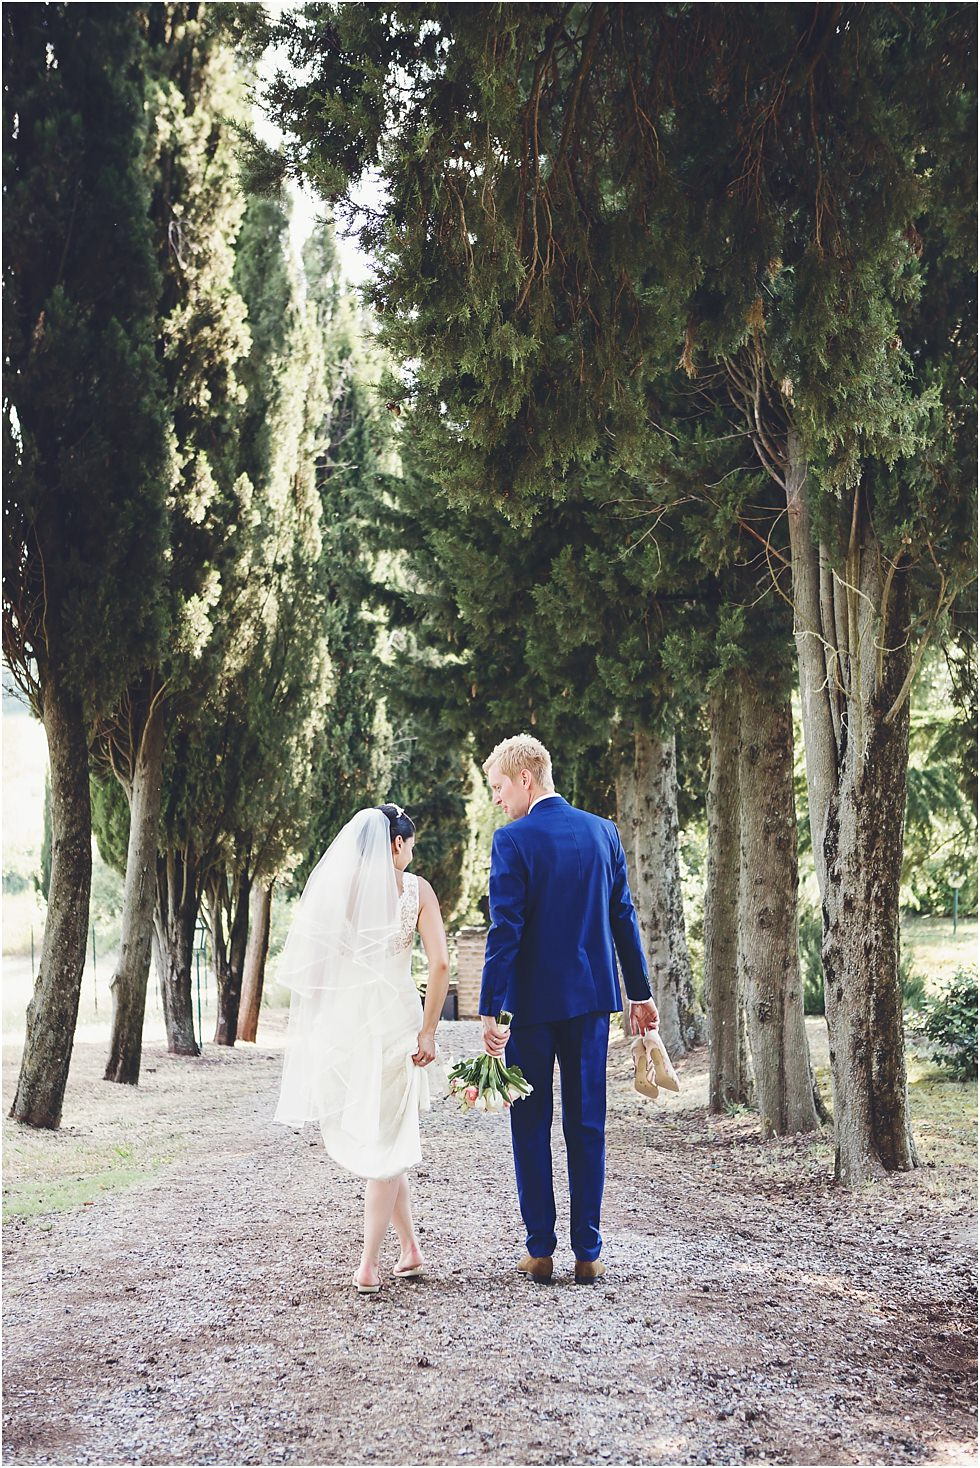 Cristina Rossi Photography Destination Wedding Italy_1294